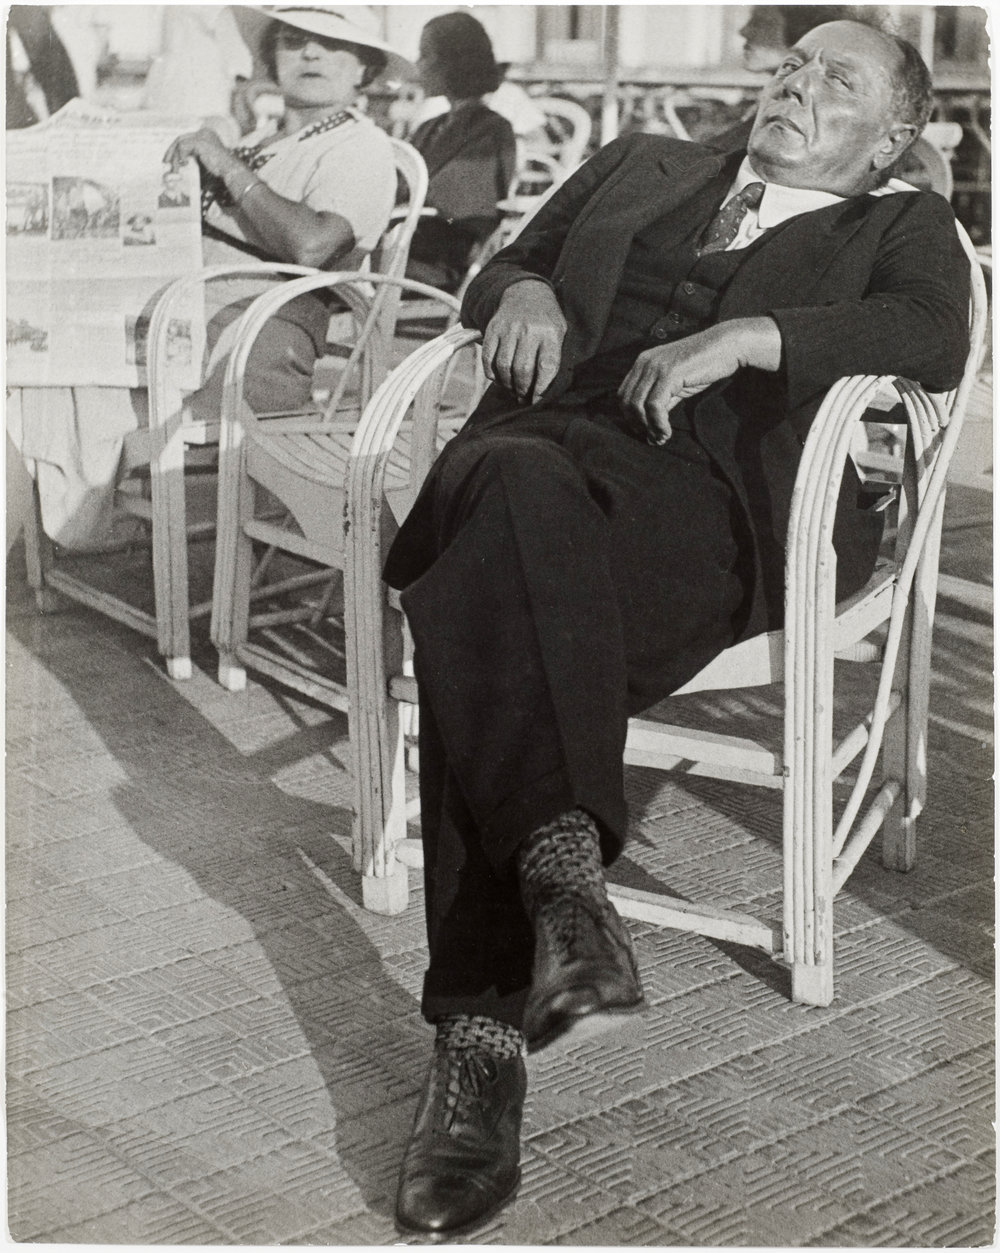 The Gambler, French Riviera, 1937